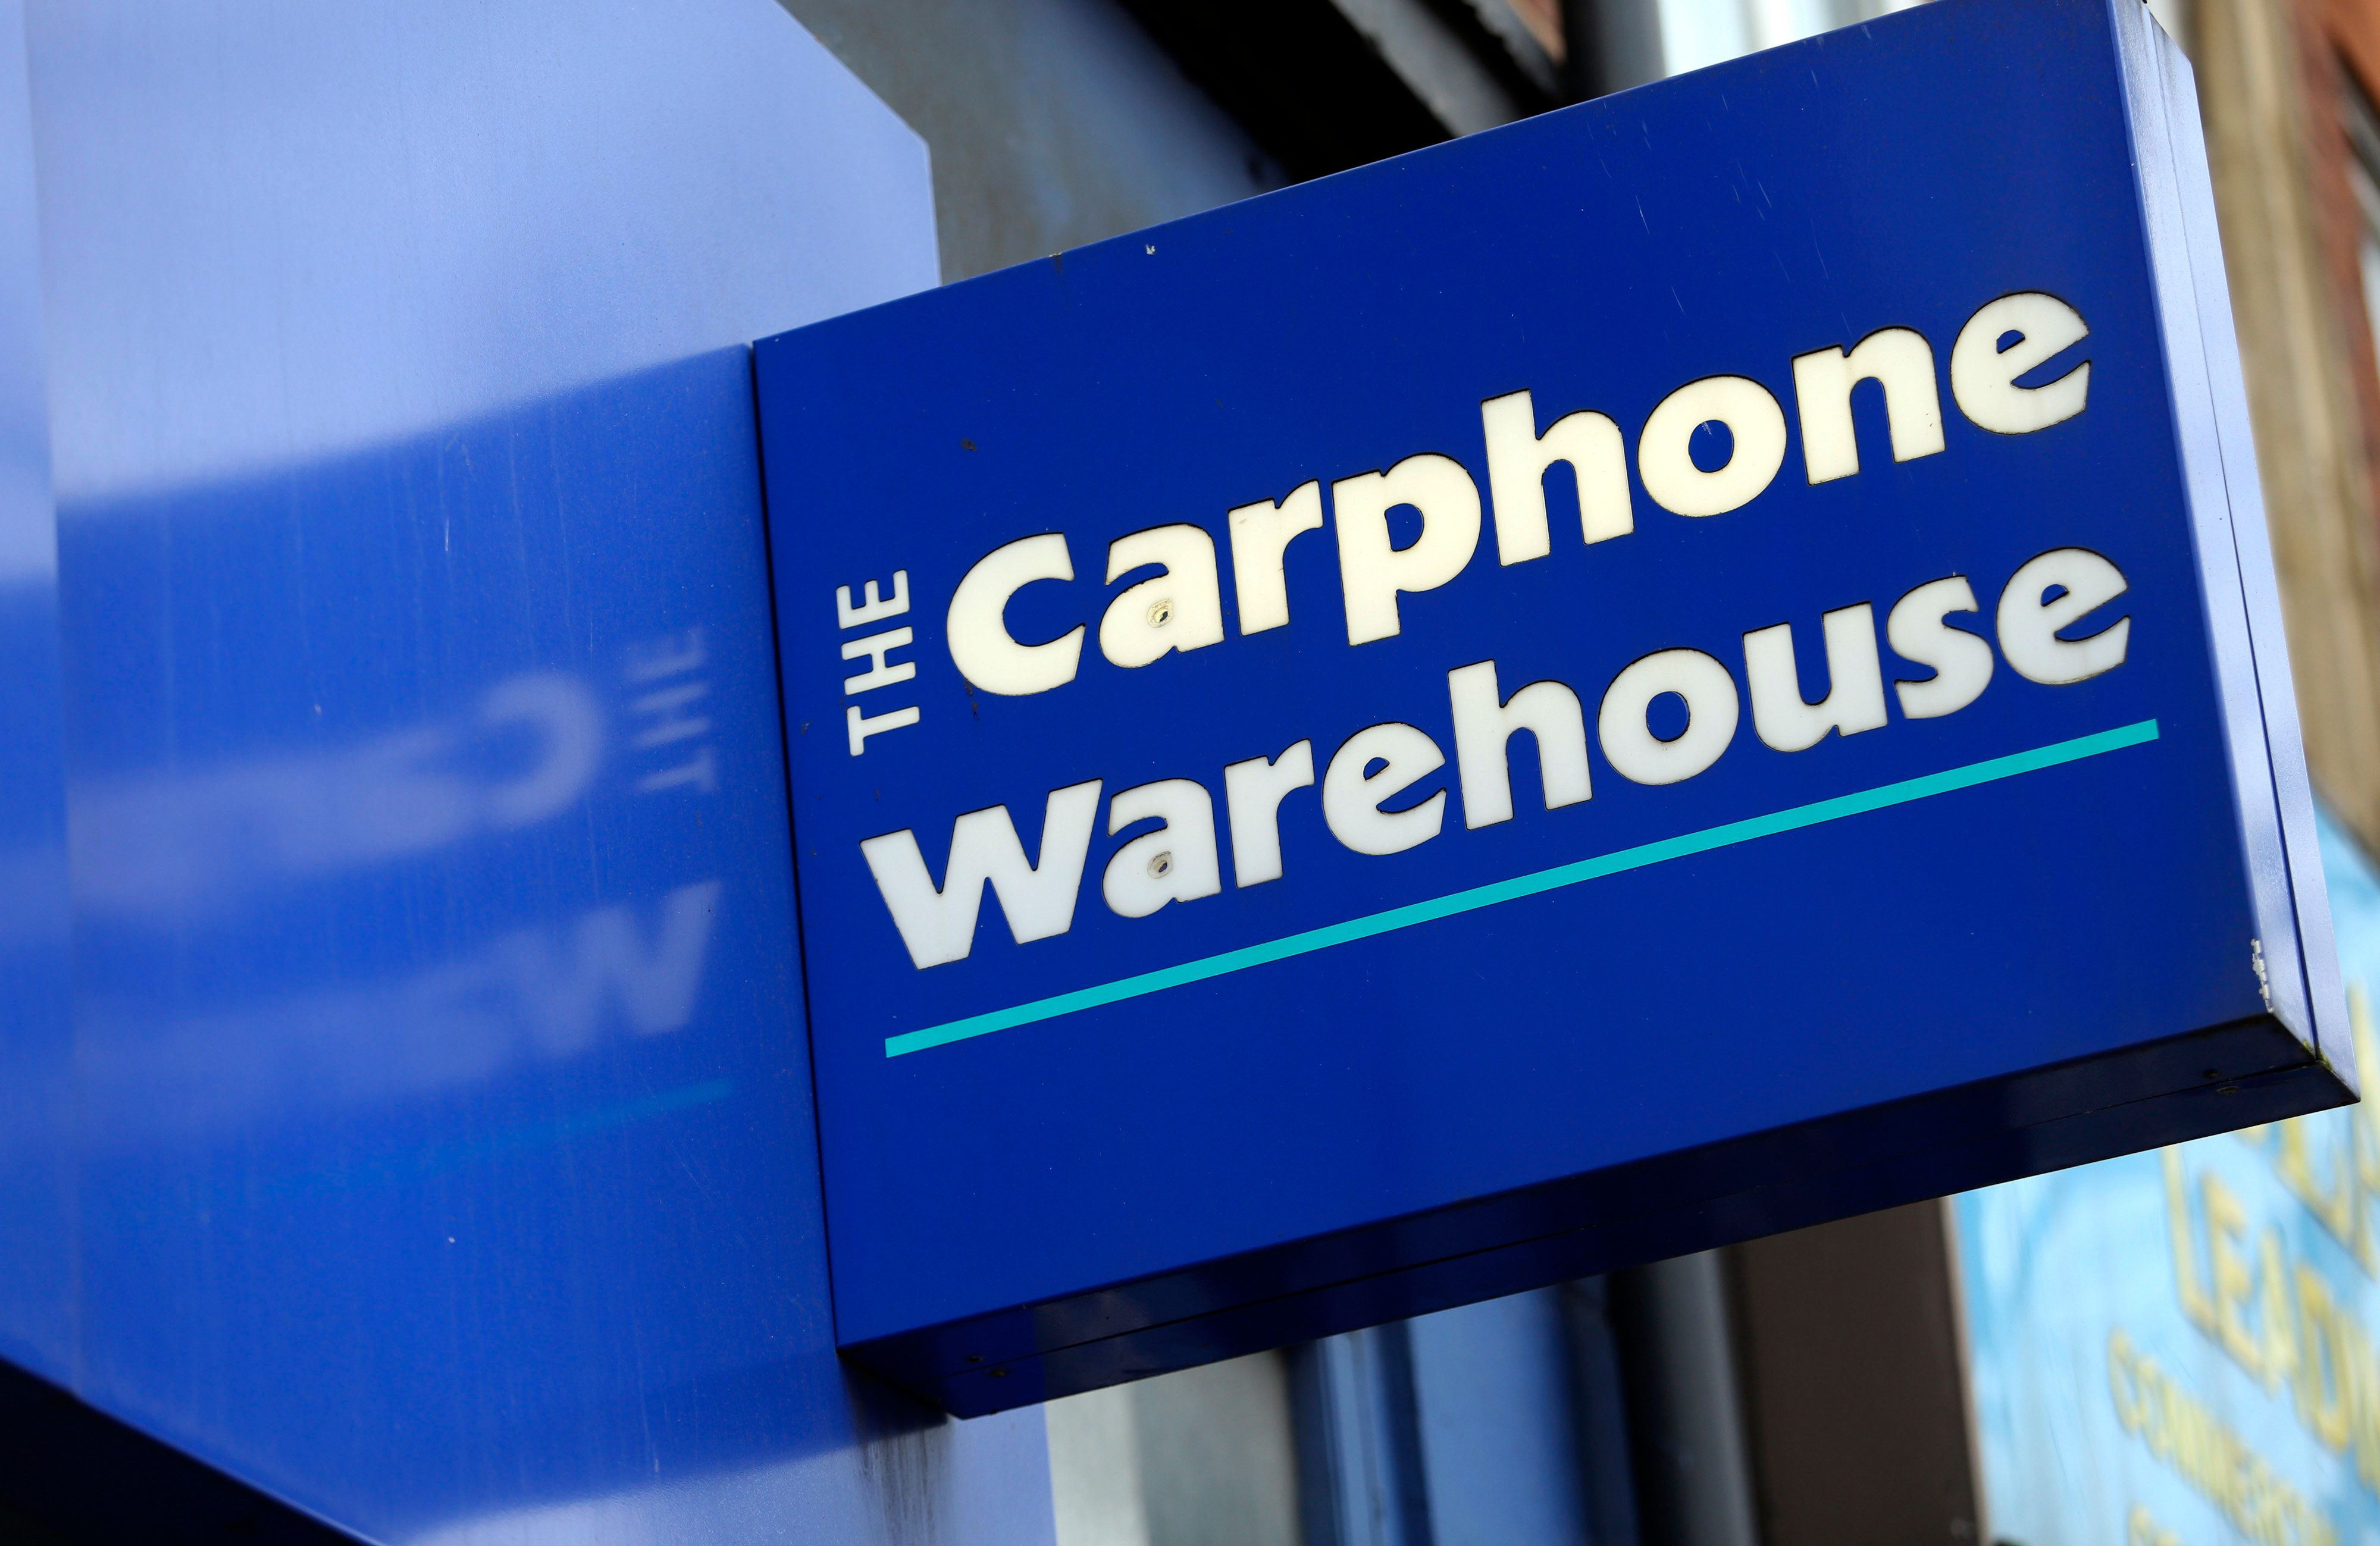 Dixons Carphone Data Breach: What To Do If You're One Of The 10 Million